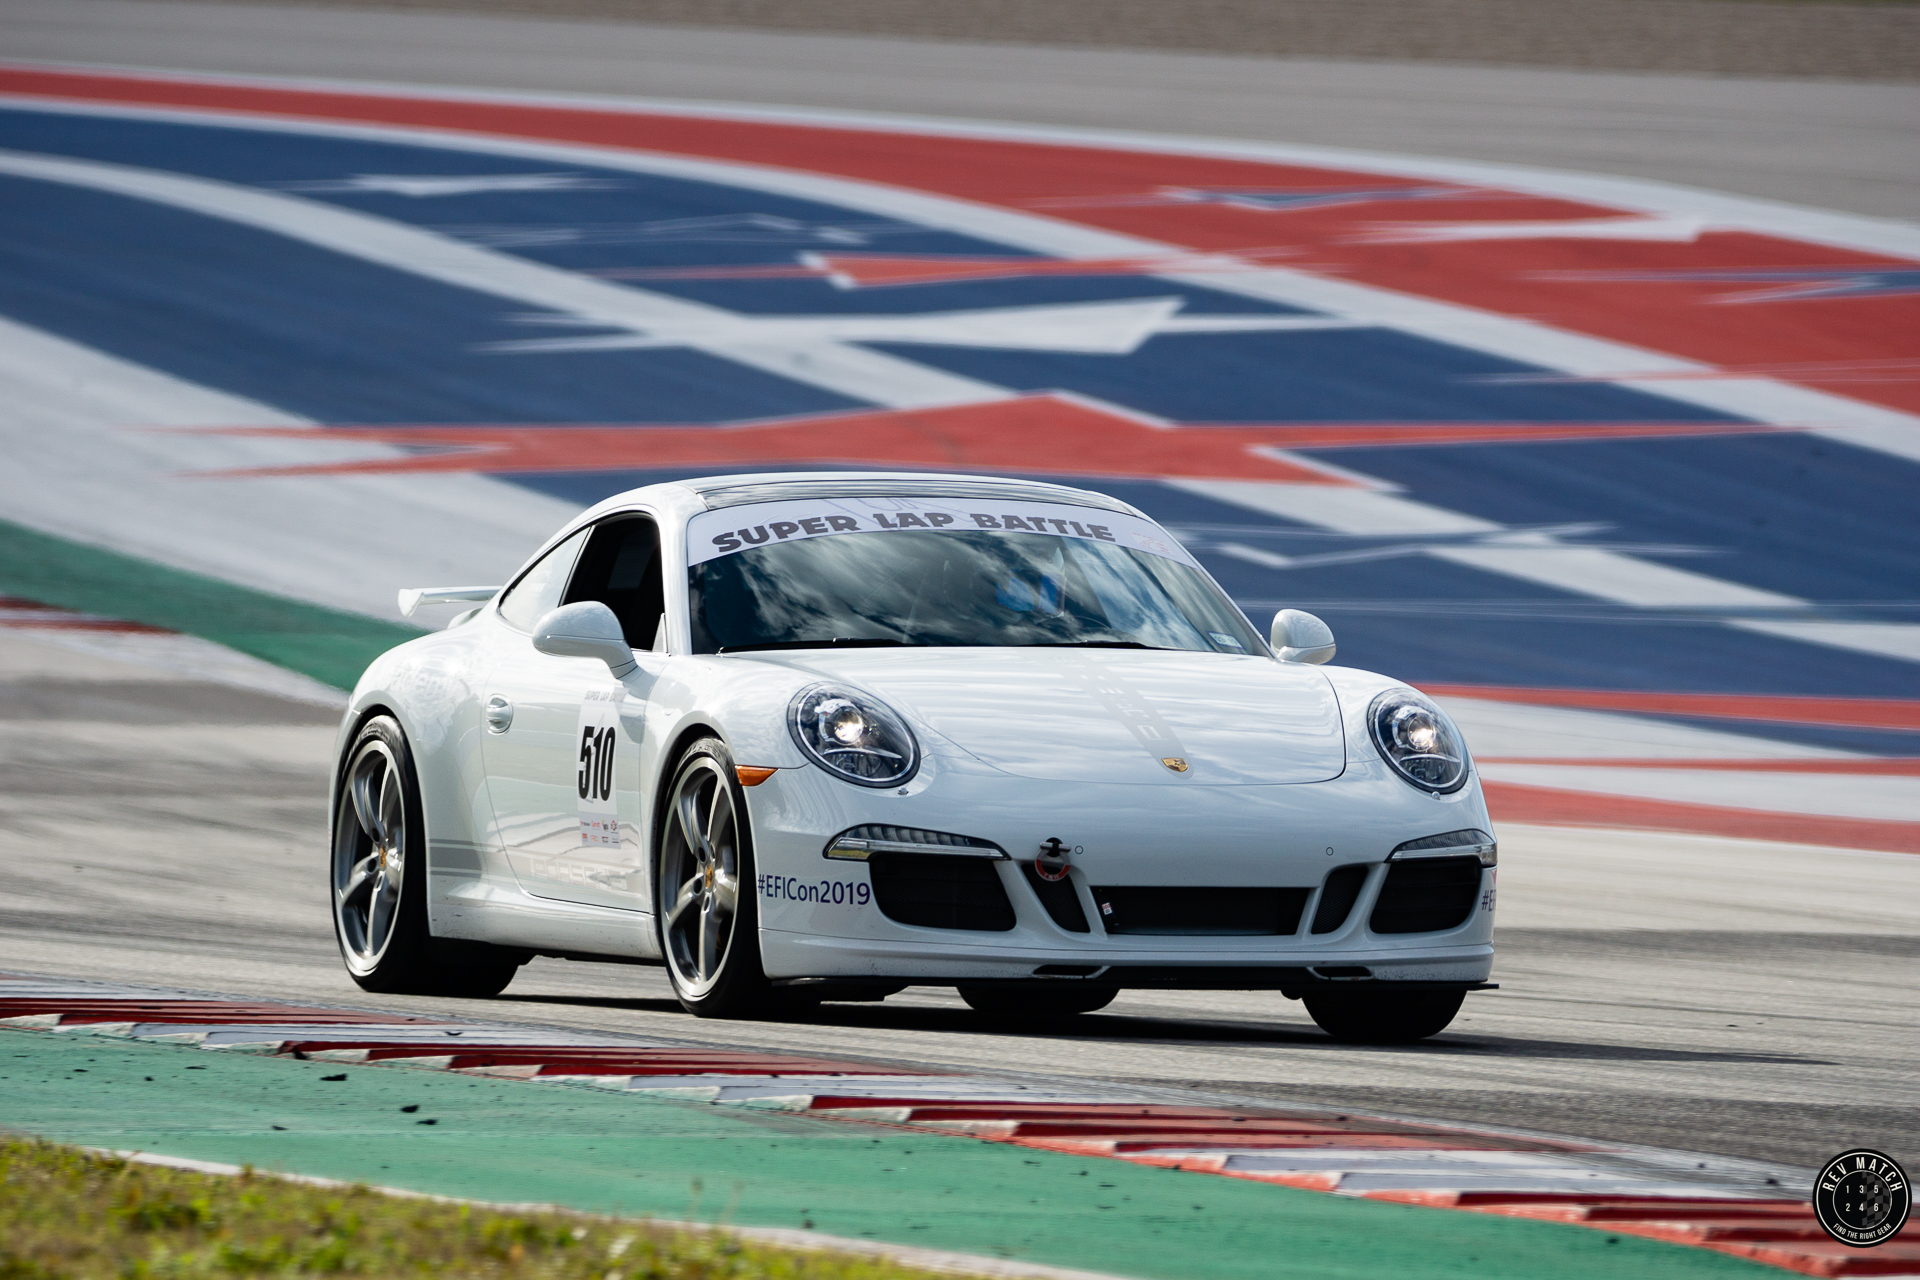 Super Lap Battle COTA Rev Match Media-334.jpg